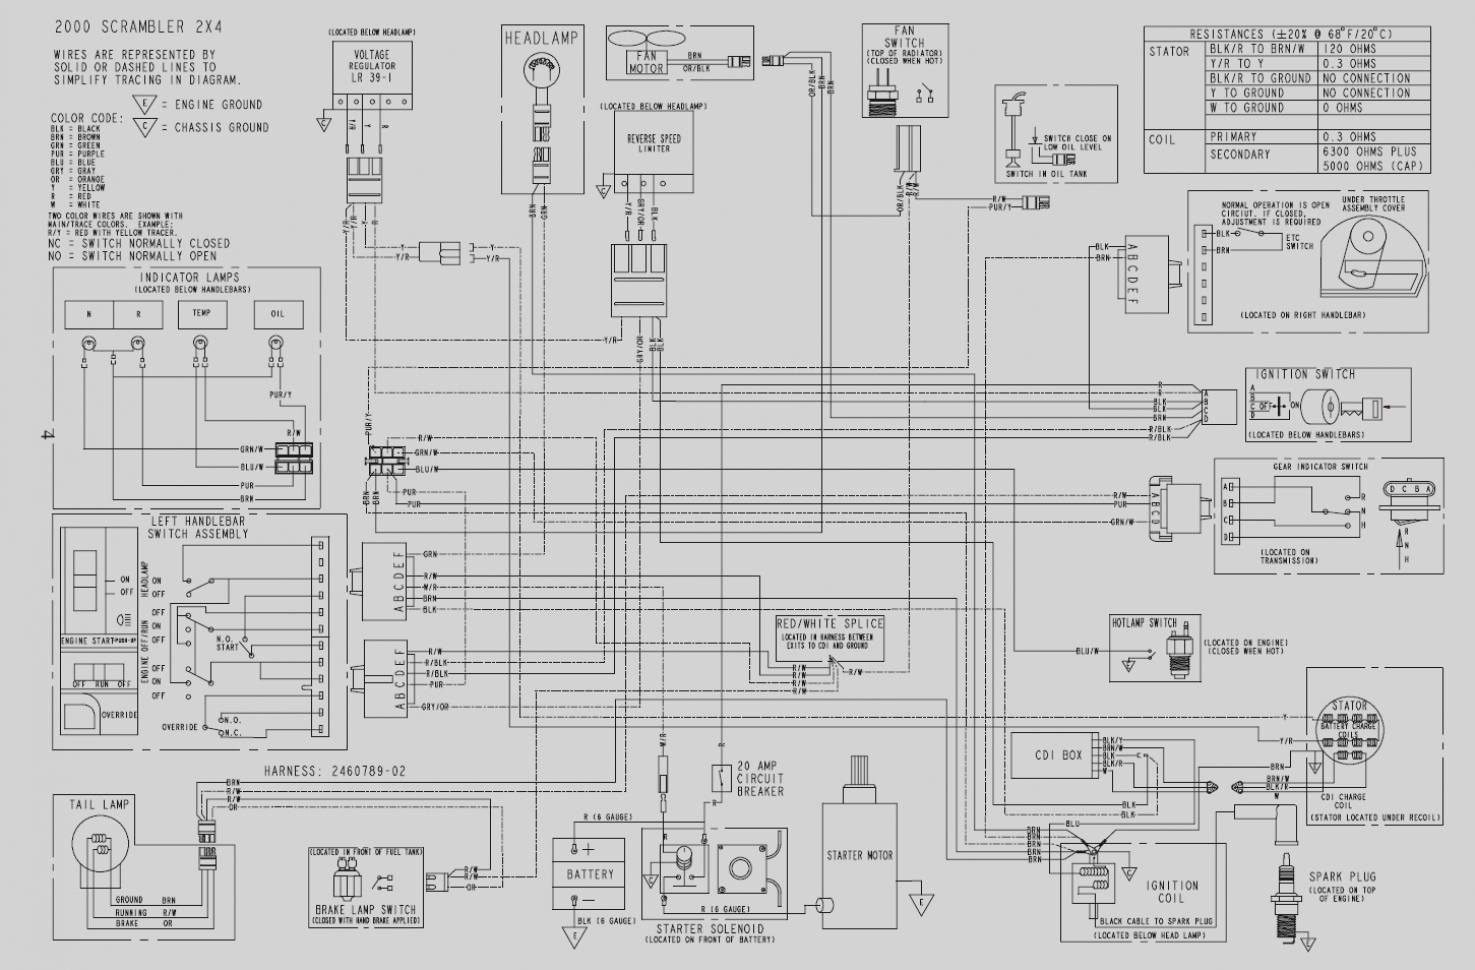 Buyers Salt Spreader Controller Wiring Diagram